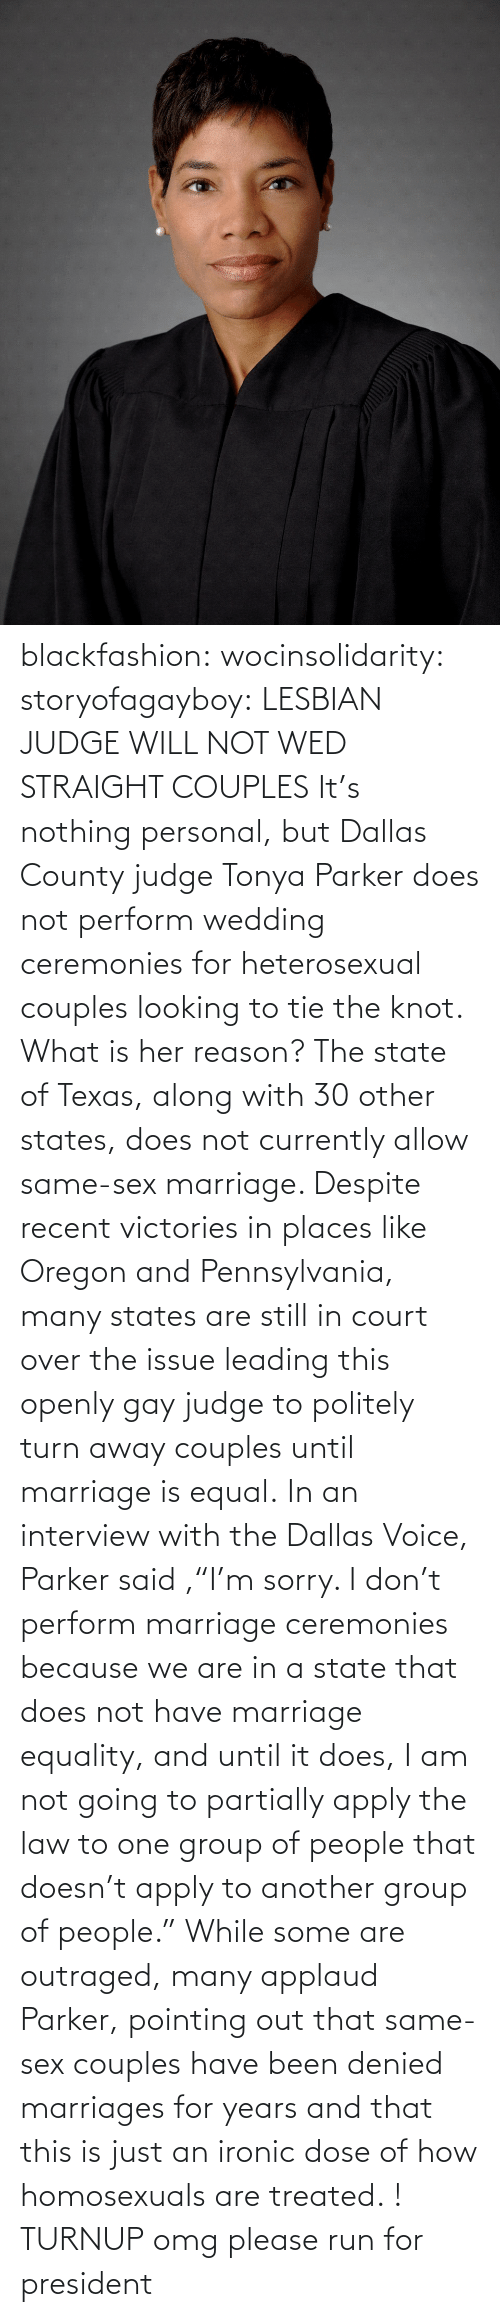 """the knot: blackfashion:  wocinsolidarity:  storyofagayboy:  LESBIAN JUDGE WILL NOT WED STRAIGHT COUPLES It's nothing personal, but Dallas County judge Tonya Parker does not perform wedding ceremonies for heterosexual couples looking to tie the knot. What is her reason? The state of Texas, along with 30 other states, does not currently allow same-sex marriage. Despite recent victories in places like Oregon and Pennsylvania, many states are still in court over the issue leading this openly gay judge to politely turn away couples until marriage is equal. In an interview with the Dallas Voice, Parker said ,""""I'm sorry. I don't perform marriage ceremonies because we are in a state that does not have marriage equality, and until it does, I am not going to partially apply the law to one group of people that doesn't apply to another group of people."""" While some are outraged, many applaud Parker, pointing out that same-sex couples have been denied marriages for years and that this is just an ironic dose of how homosexuals are treated.  !  TURNUP  omg please run for president"""